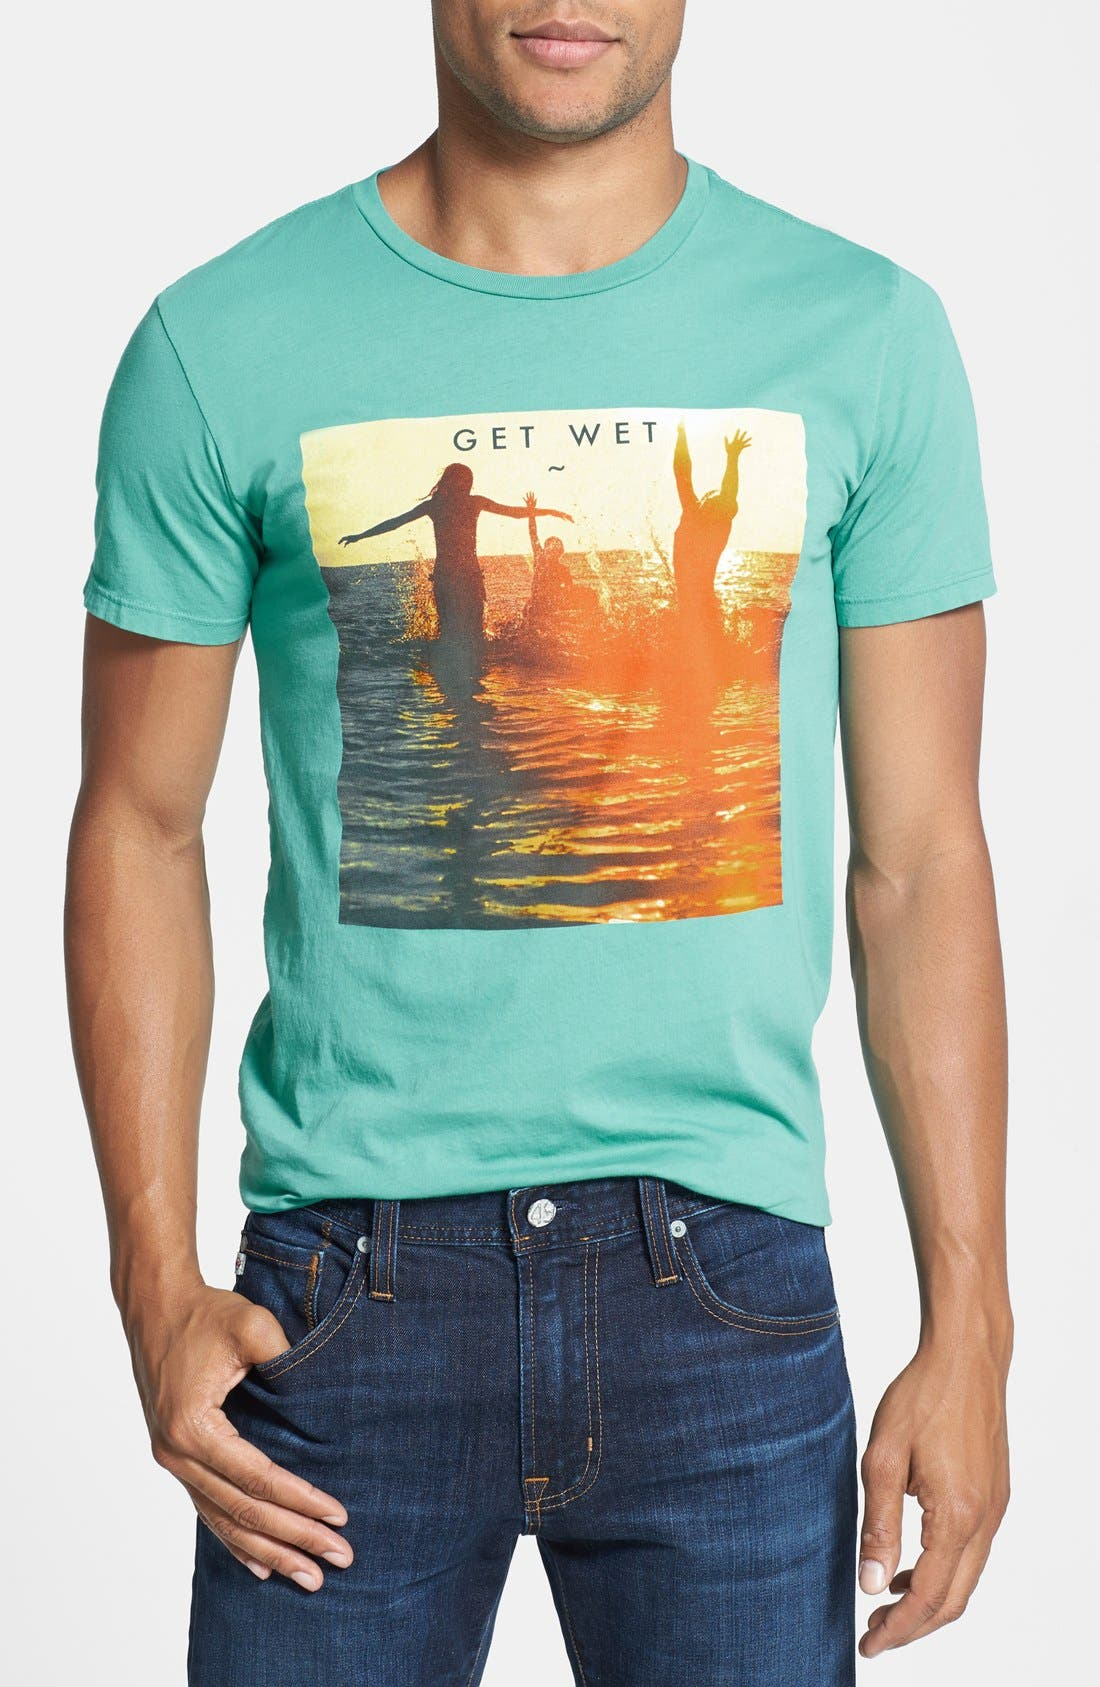 Alternate Image 1 Selected - Altru 'Get Wet' Graphic T-Shirt